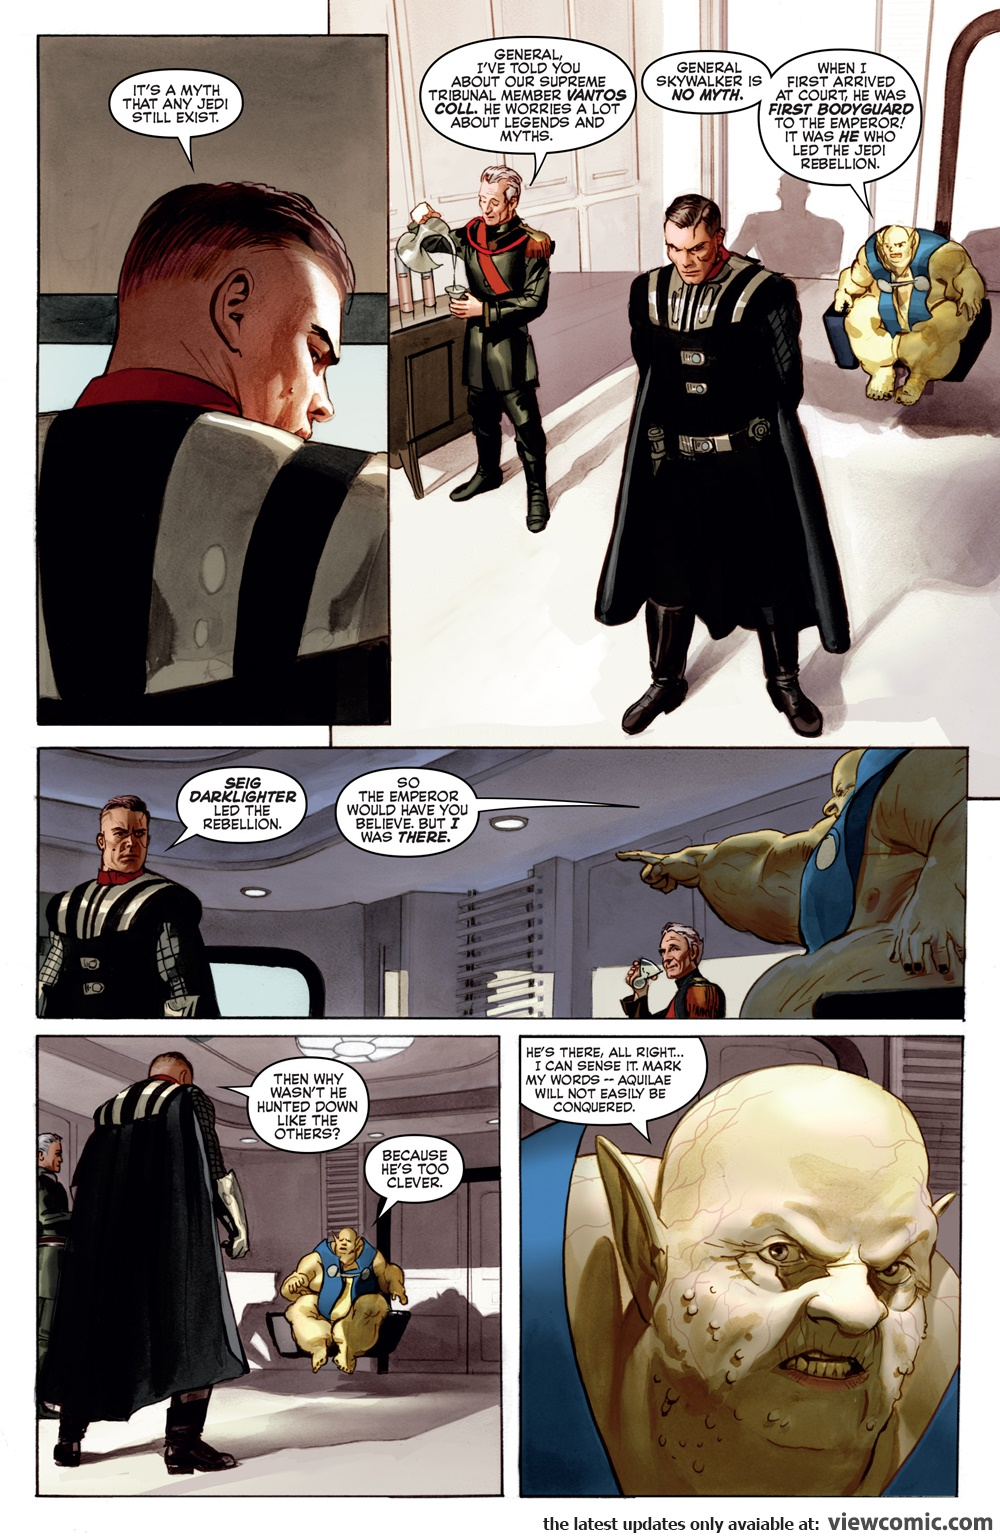 The Star Wars 001 ………………………………  | Reading Comics Online For Free